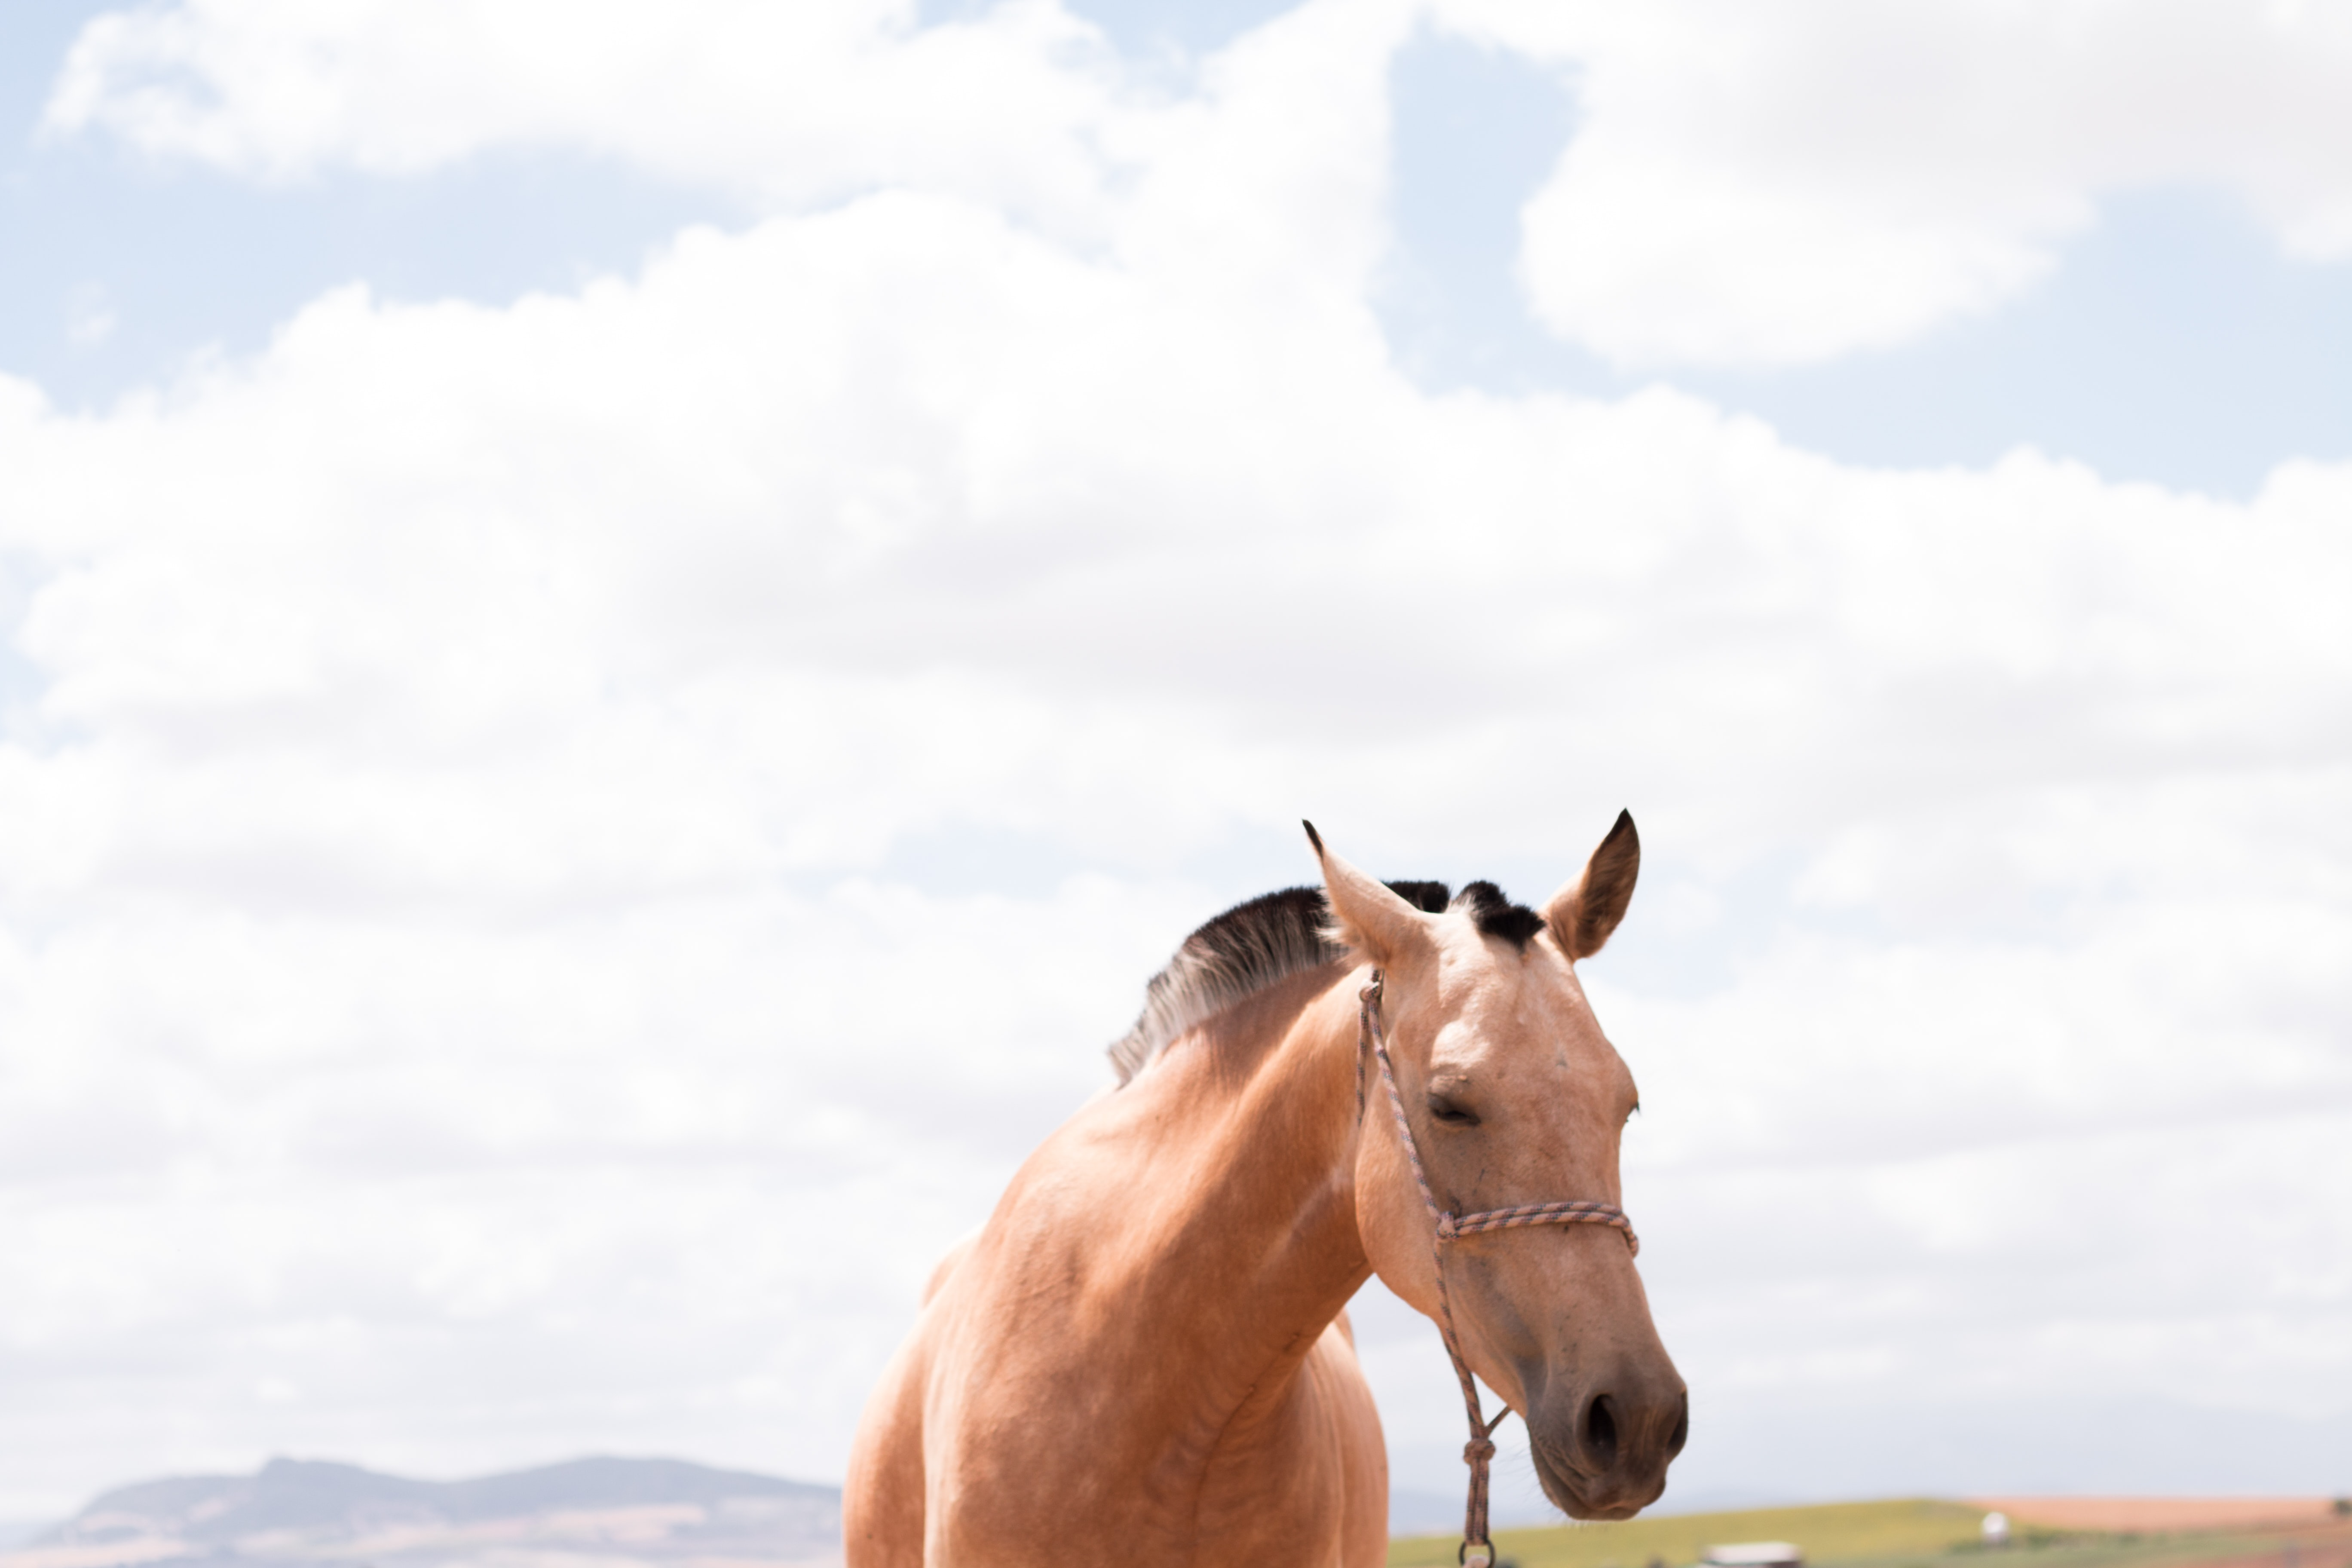 A light chestnut horse on a pasture with fluffy clouds above